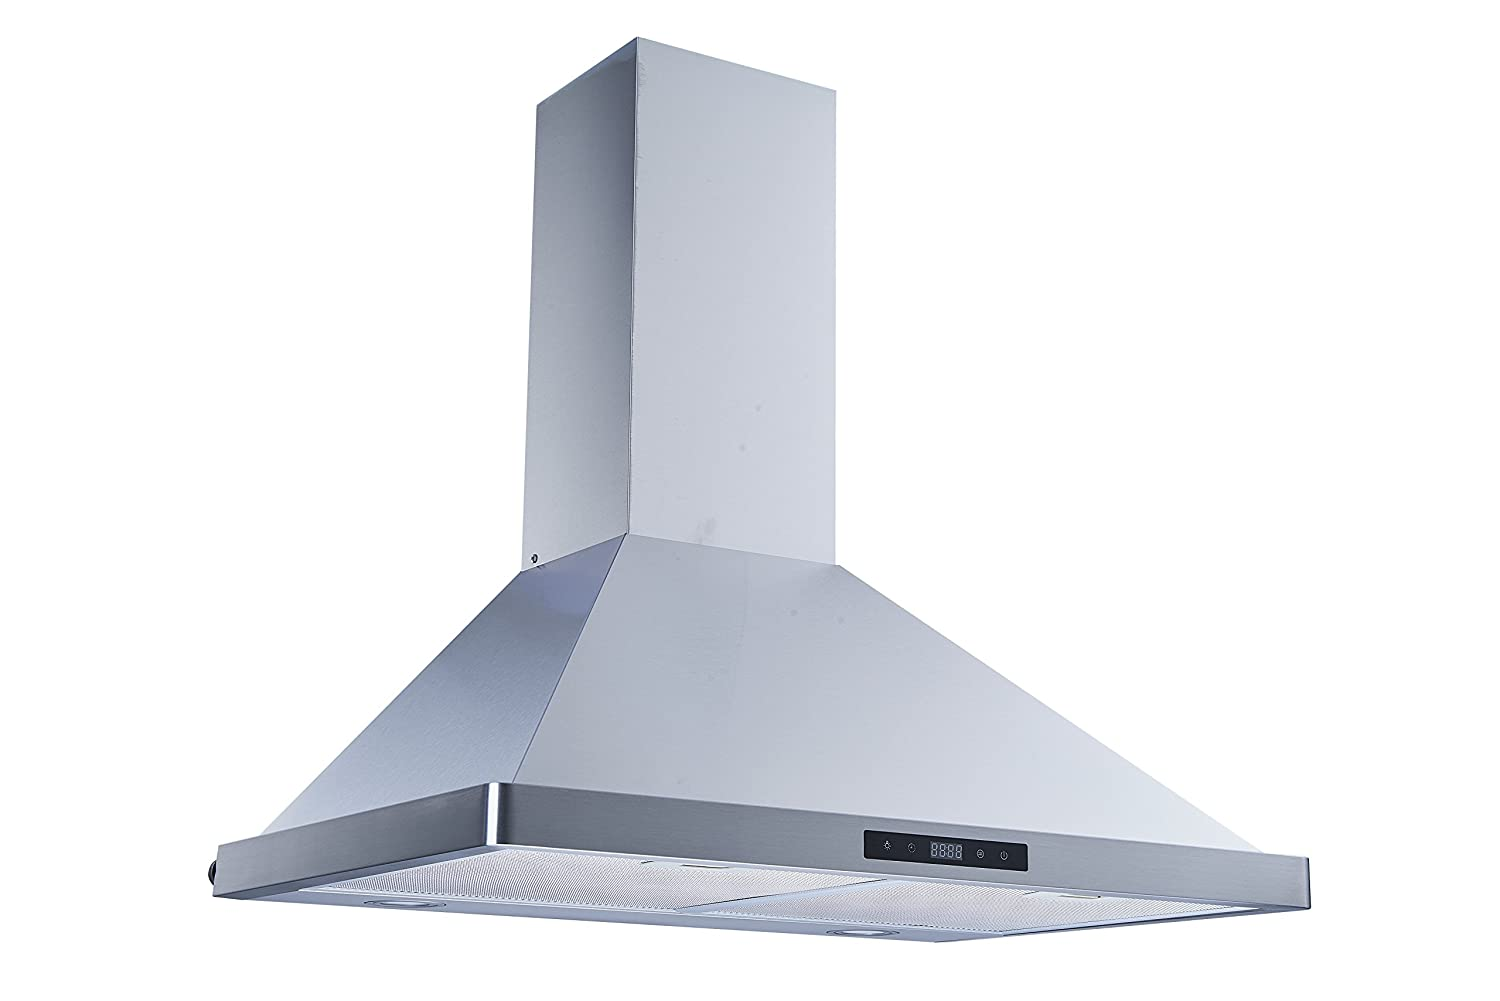 Winflo 30 Wall Mount Stainless Steel Convertible Kitchen Range Hood with 450 CFM Air Flow Aluminum Filters and LED Lights Touch Control